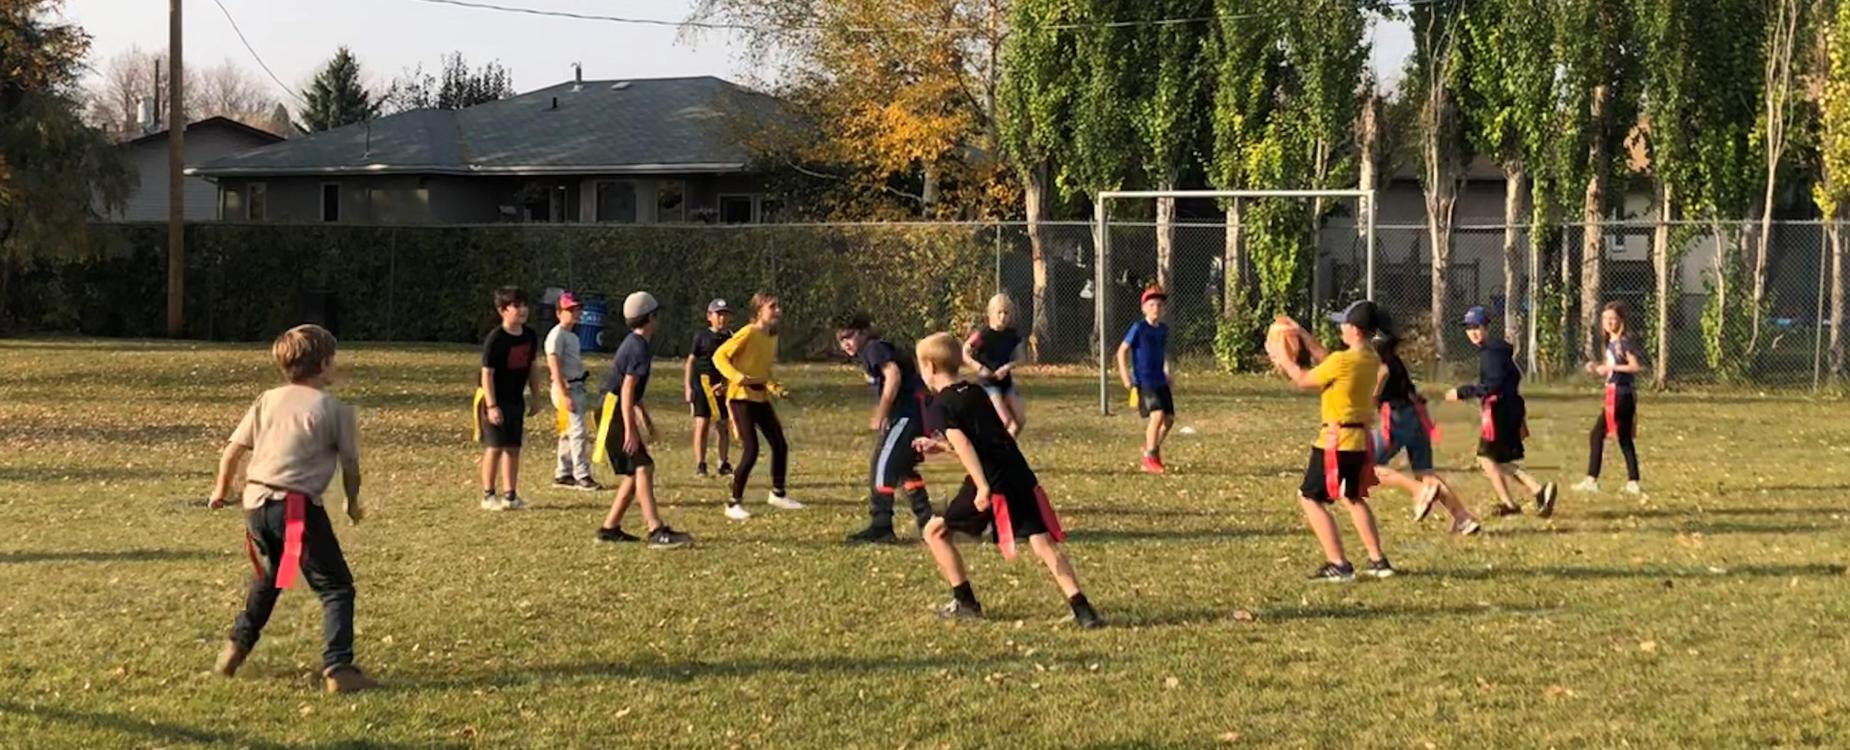 Grade 4/5 students are playing a flag football game.  The ball has just been tossed to the quarterback, and team is on the run.